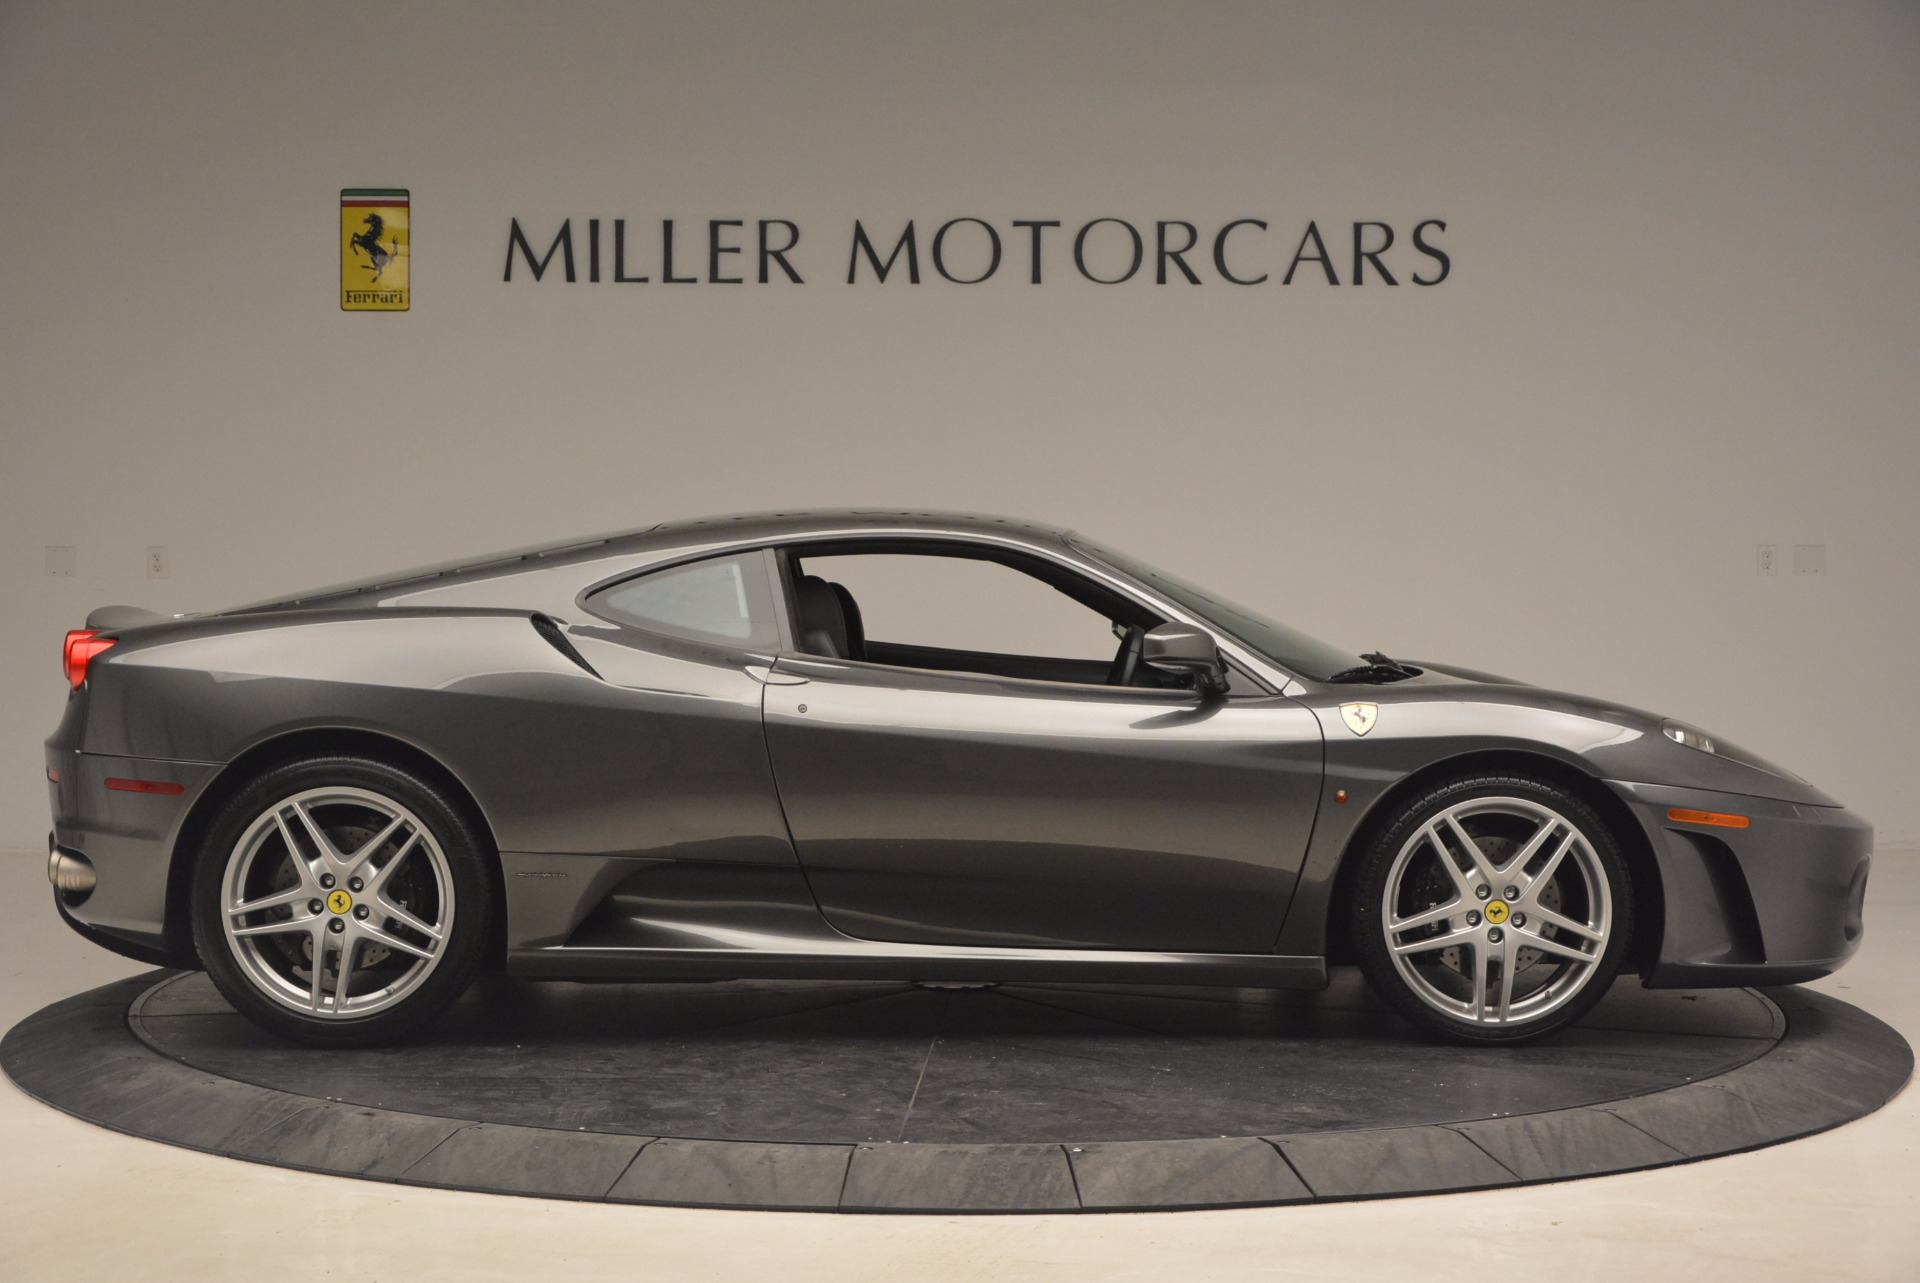 Used 2005 Ferrari F430 6-Speed Manual For Sale In Greenwich, CT 1286_p9